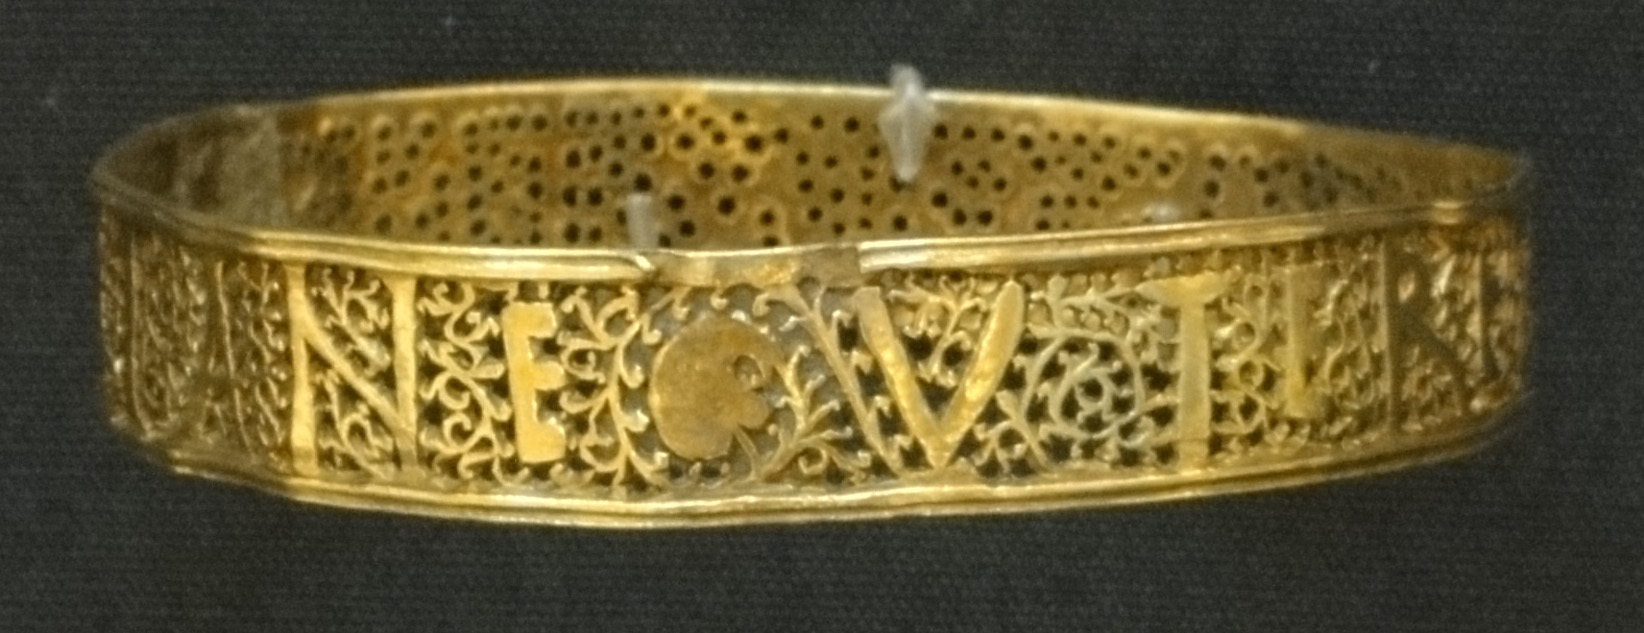 Dog Collars With Names Printed On Them Uk